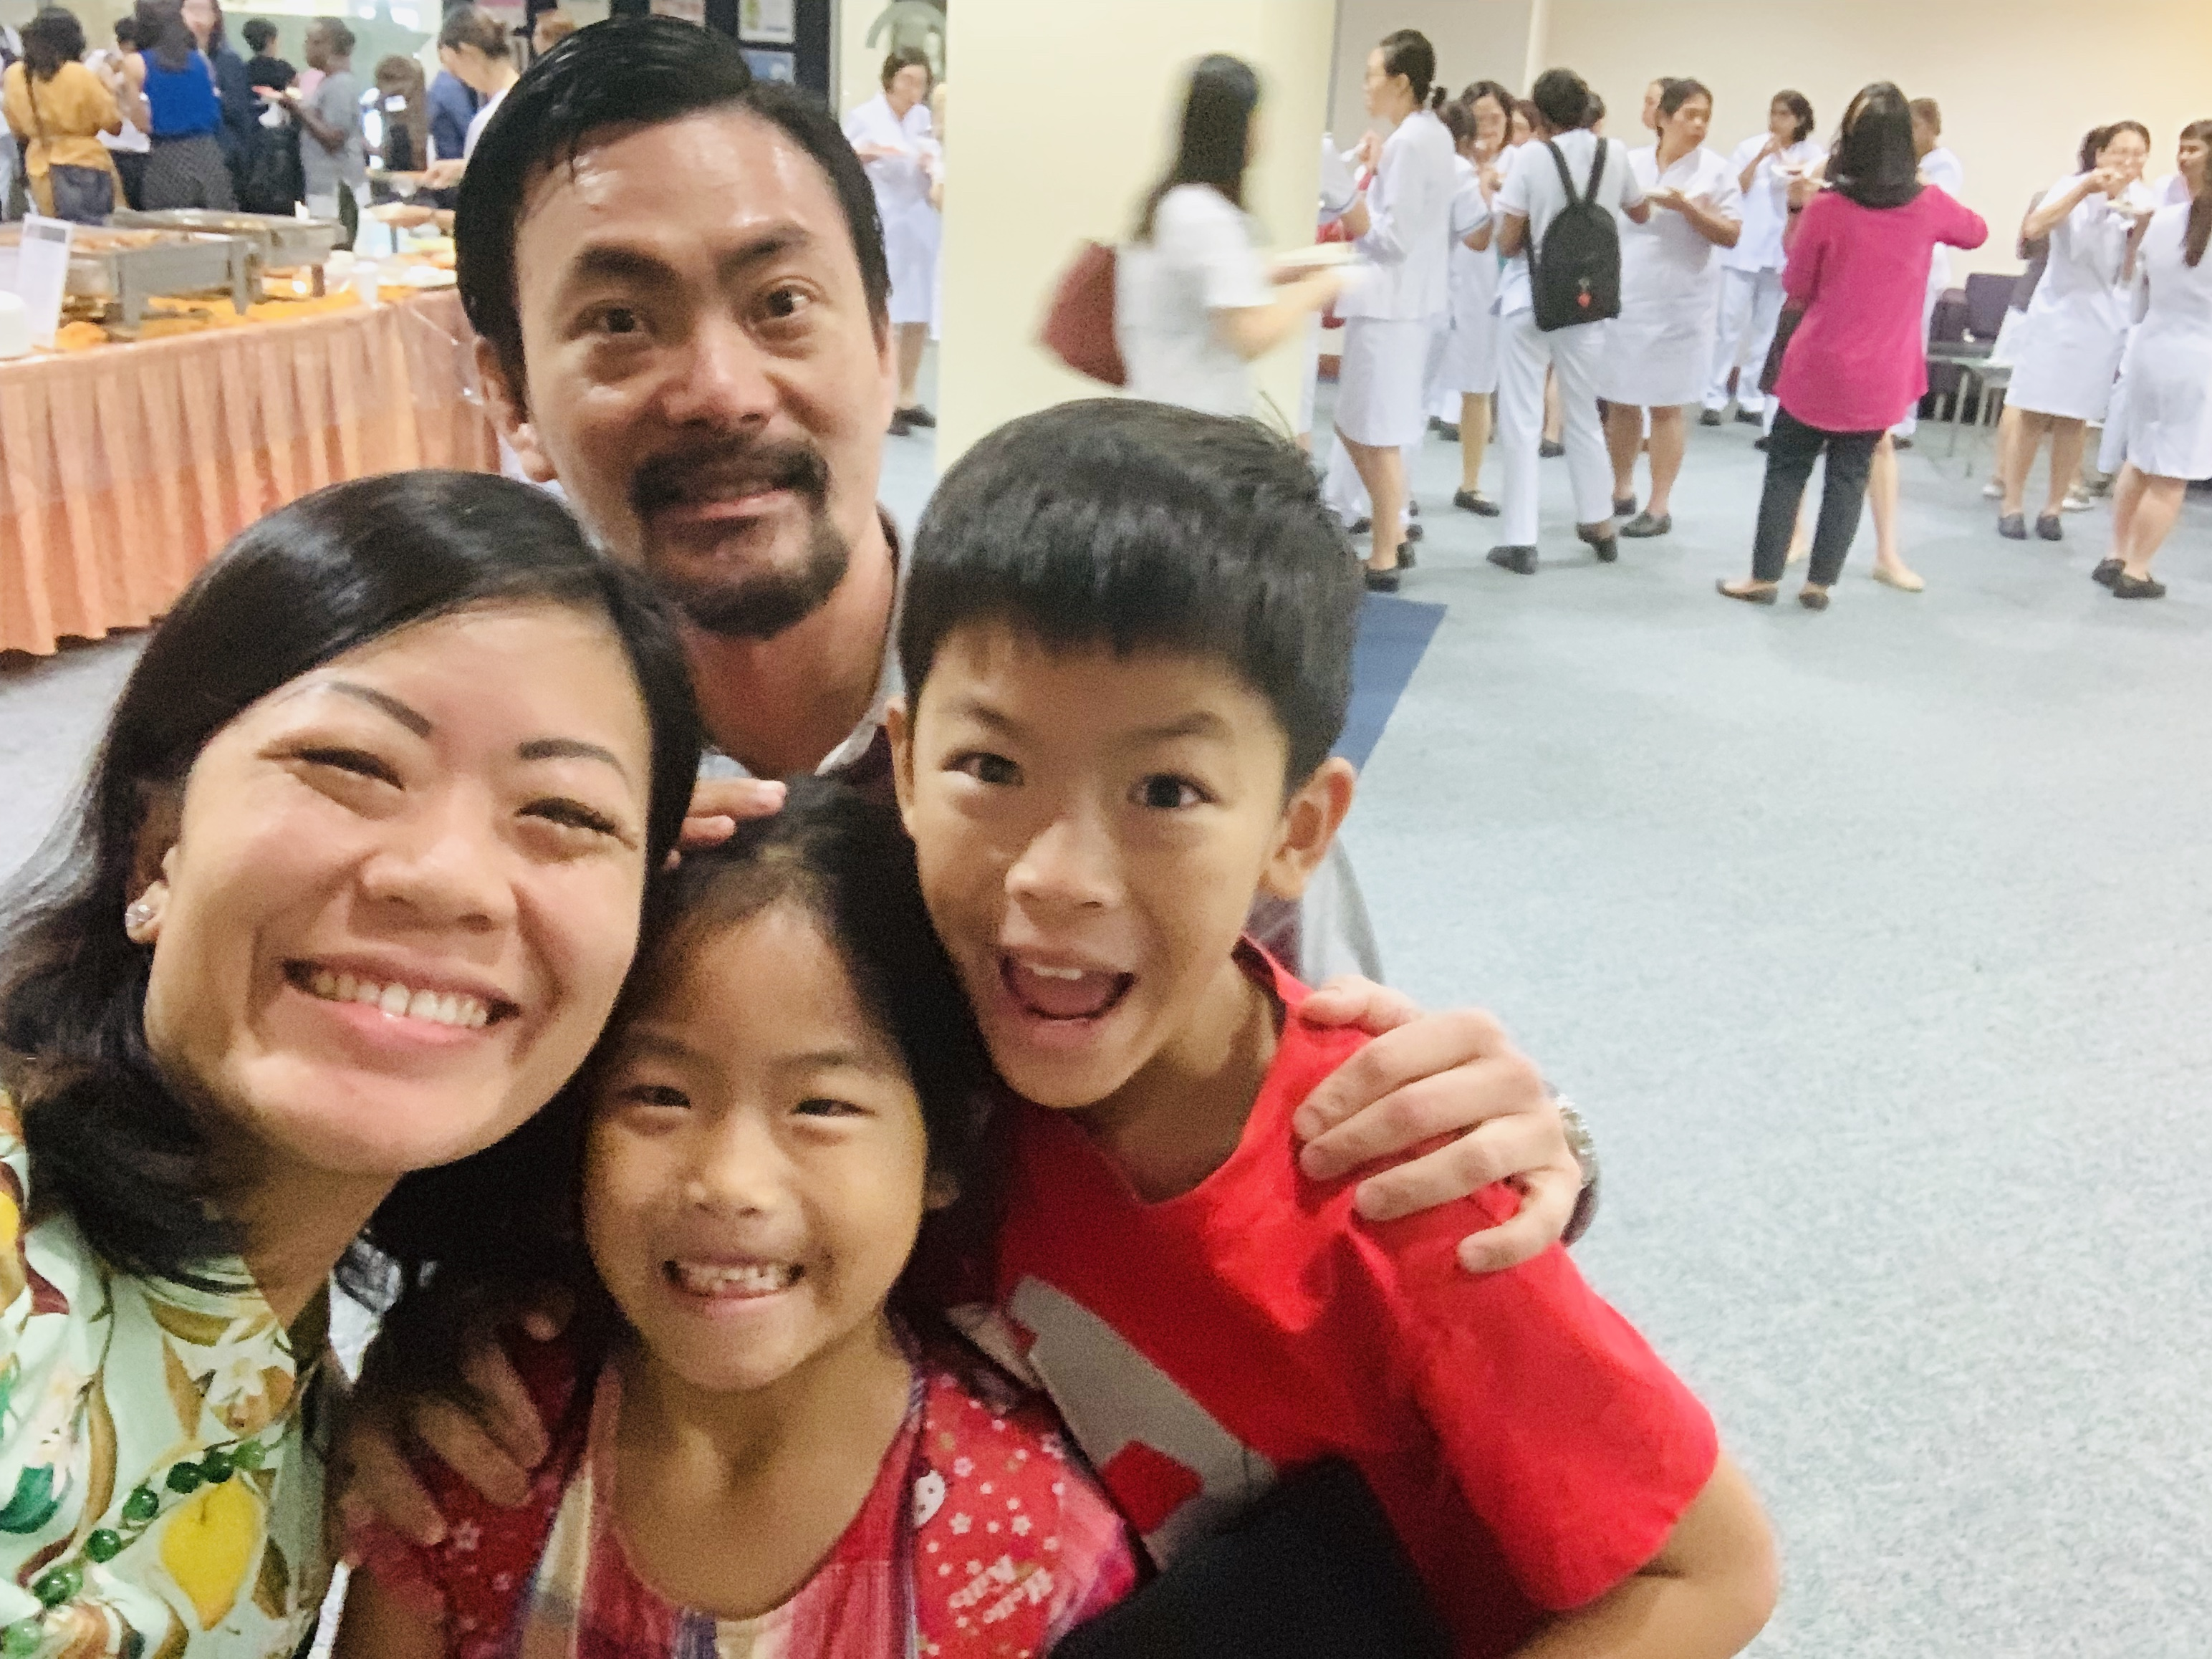 Dr Lee with my kids while I spoke on pediatric resuscitation